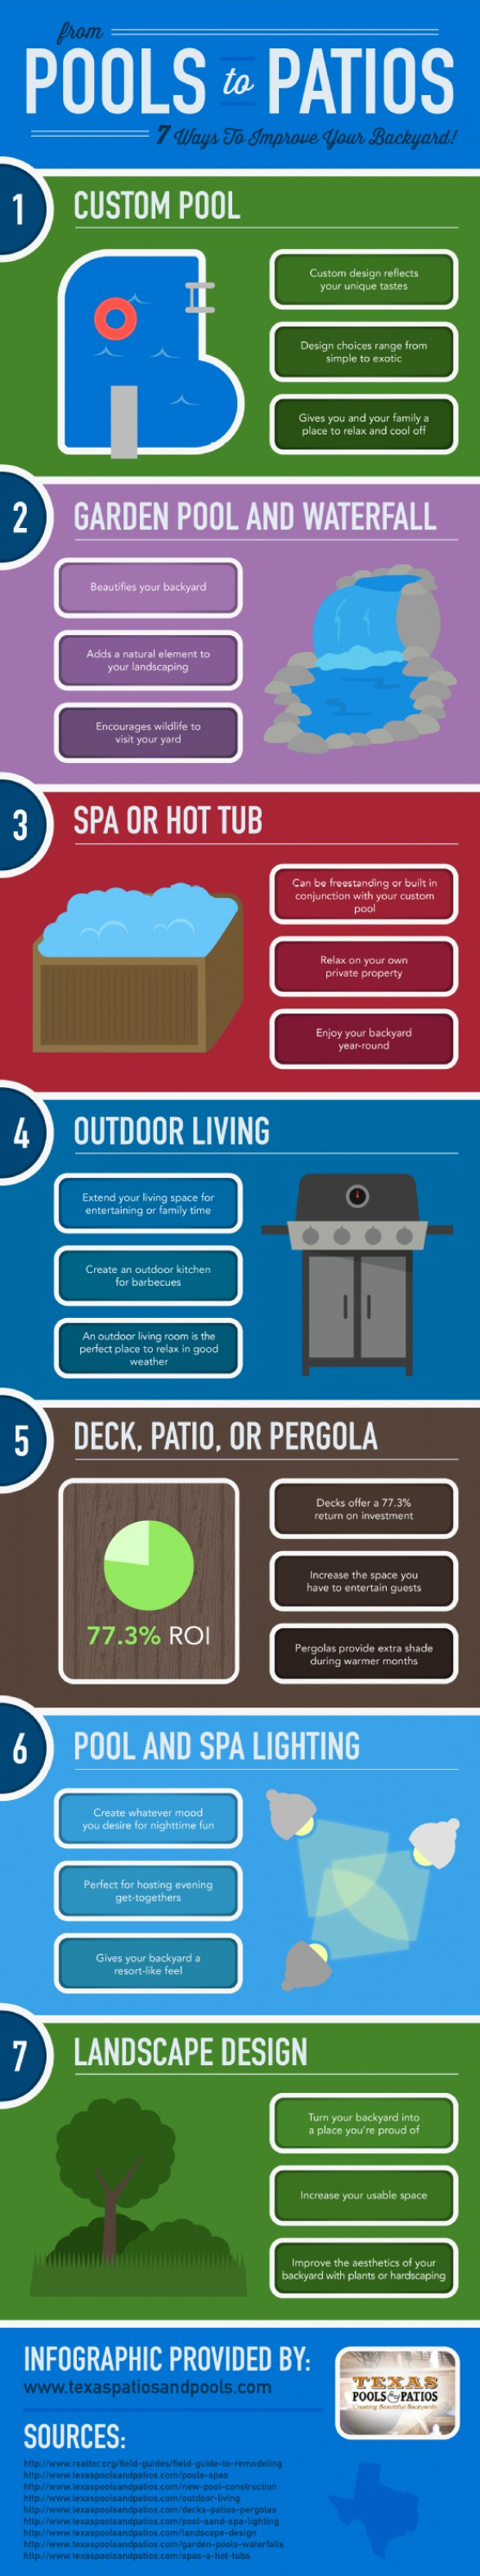 From Pools to Patios, 7 Ways to Improve Your Backyard!